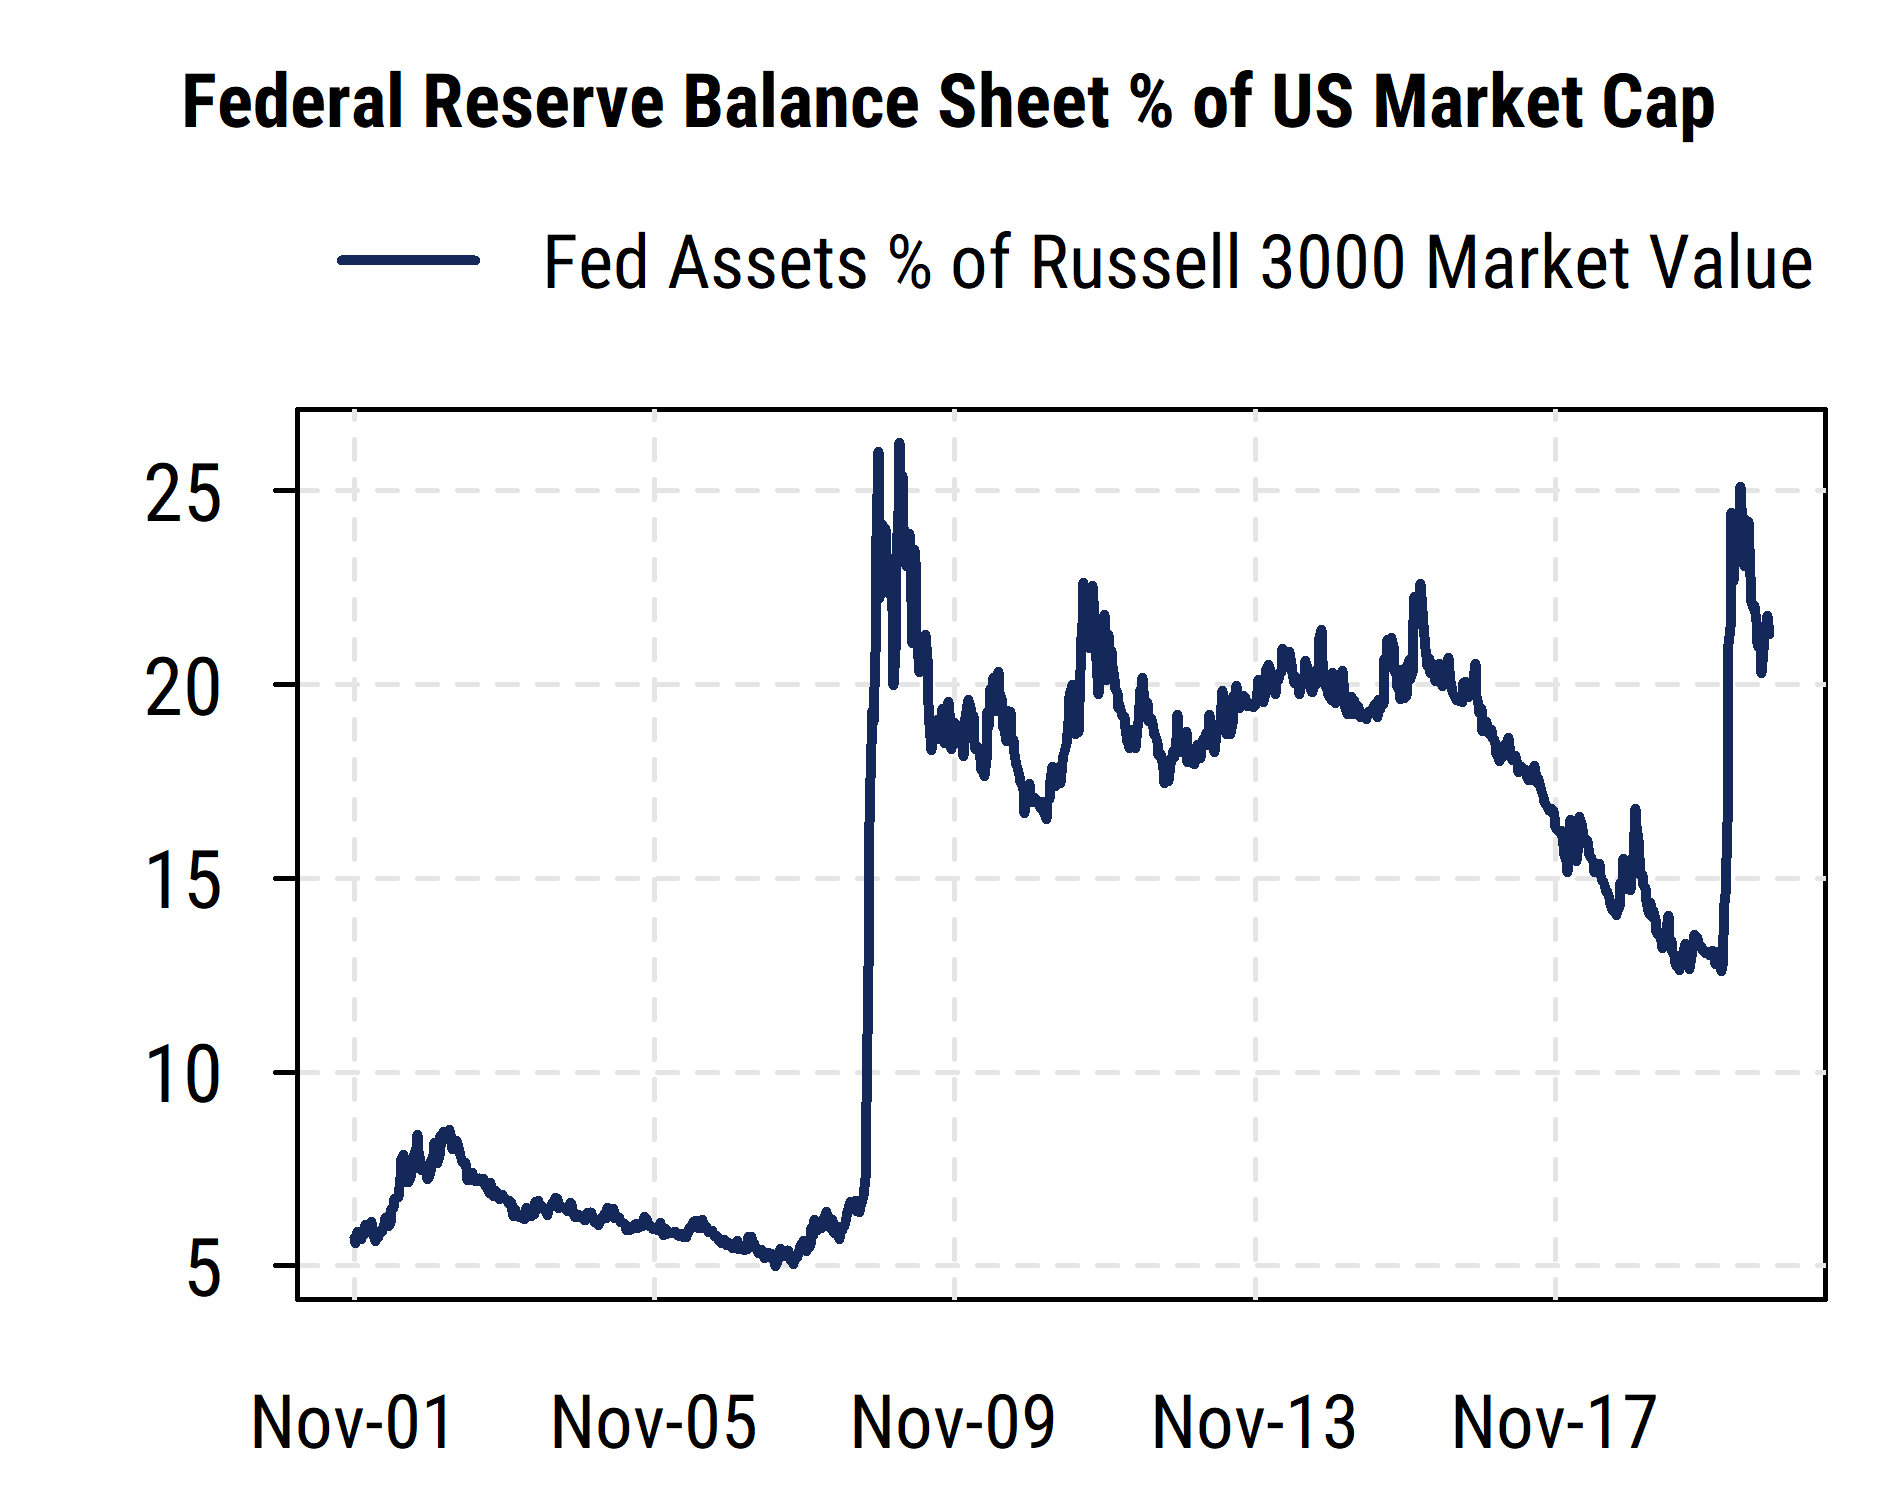 Fed Balance Sheet Pct of US Market Cap